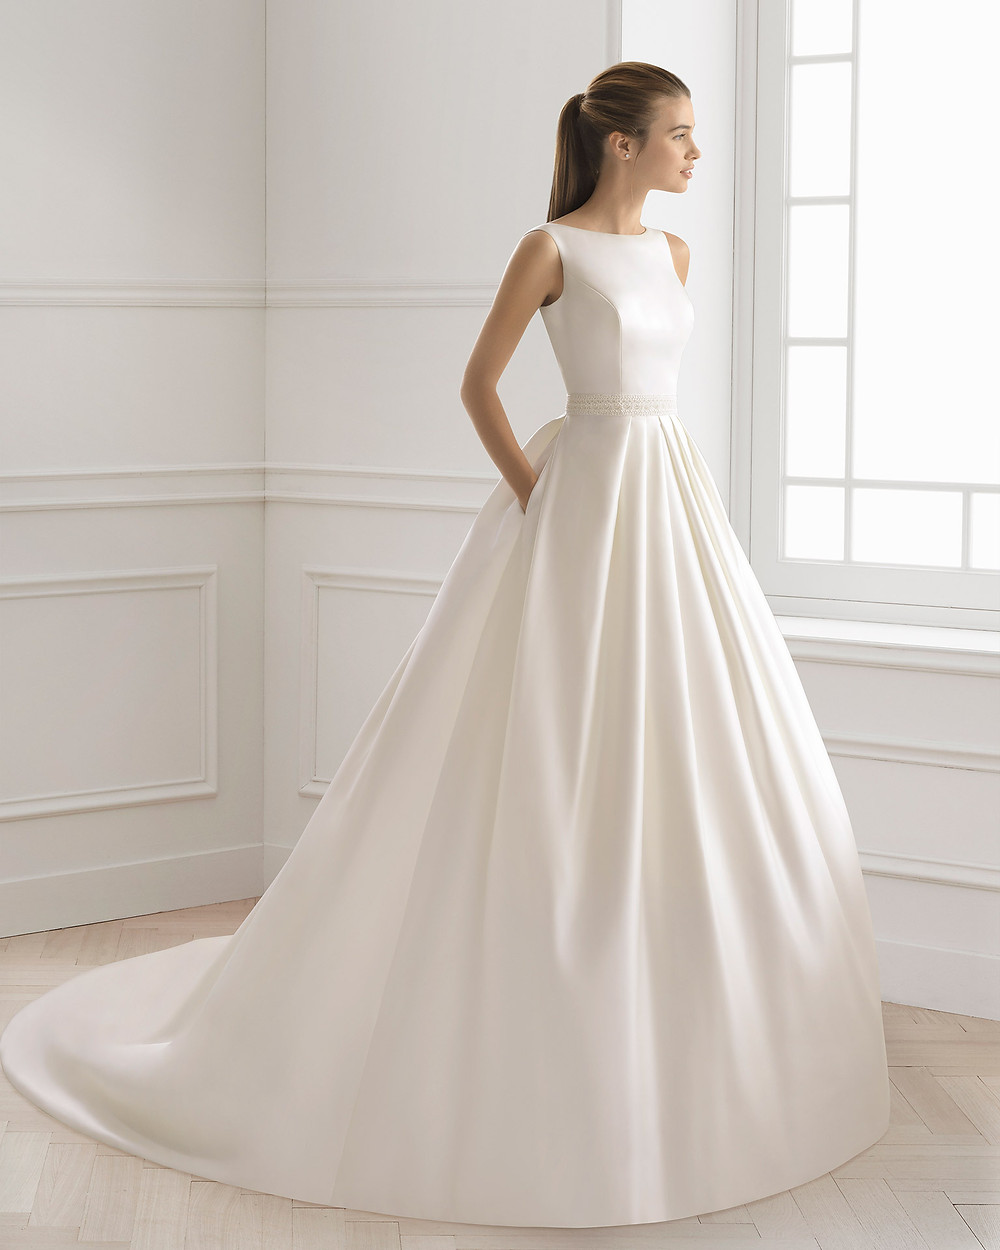 An Aire Barcelona 2020 simple silk ball gown wedding dress with pockets